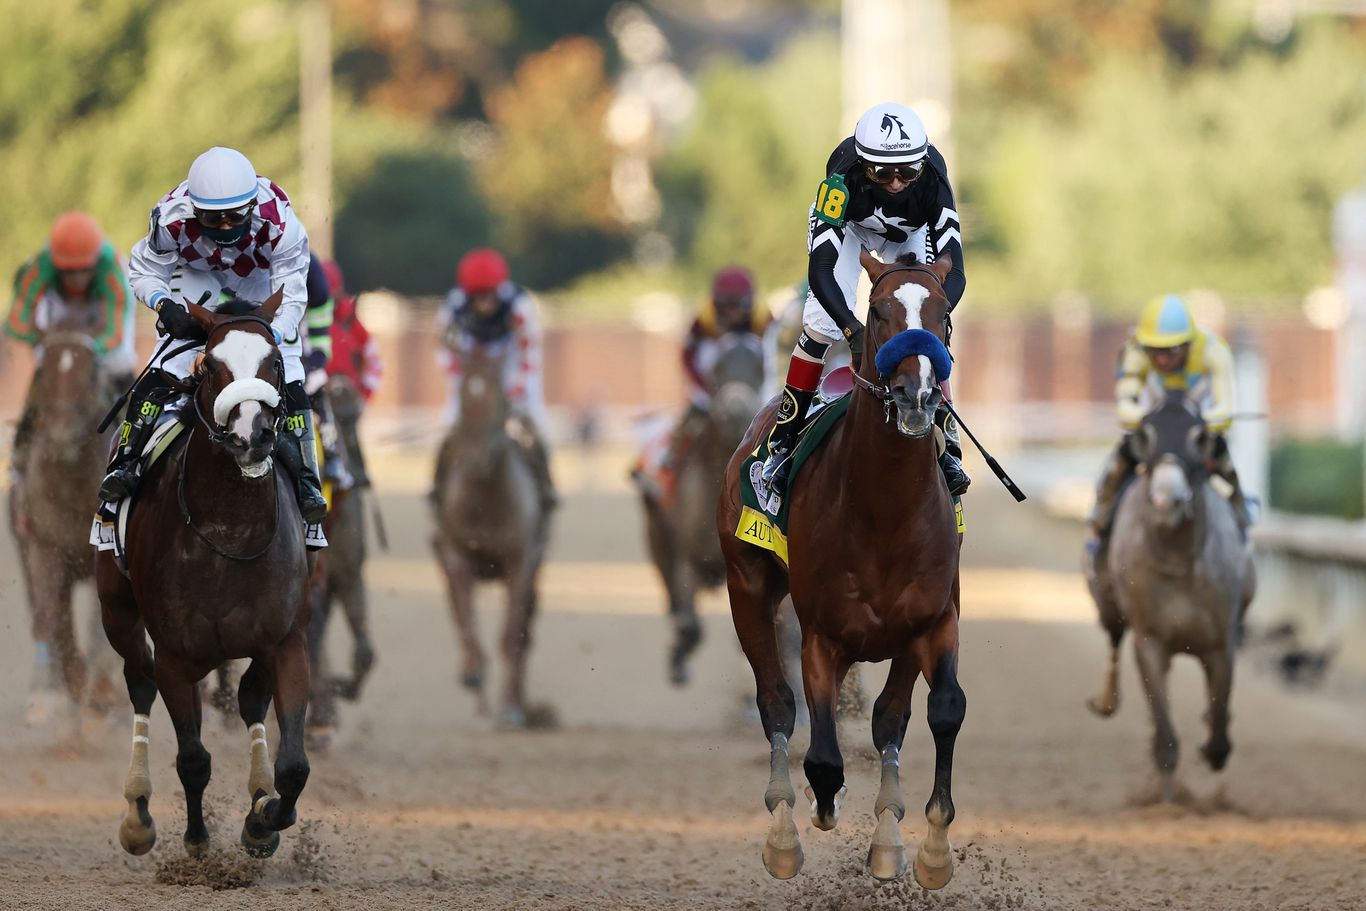 In photos: Authentic wins Kentucky Derby amid protests, no fans in the stands thumbnail